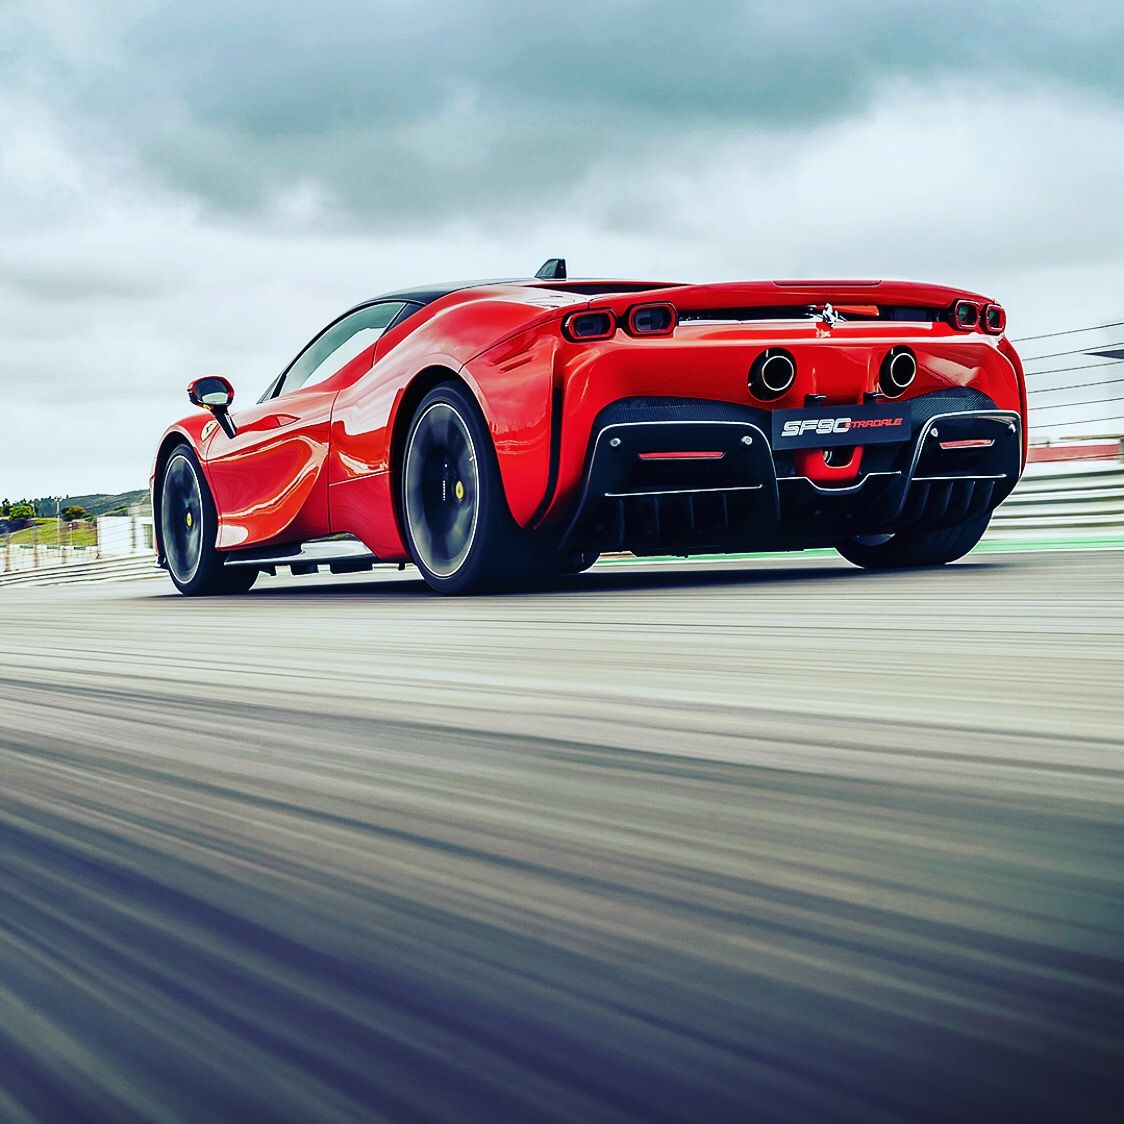 Welcome To The Official Account Of Luxury World Cars An Online Magazine Aimed For The True Lovers Of Luxury Exclusive Im In 2020 Best Luxury Cars Sports Car Ferrari